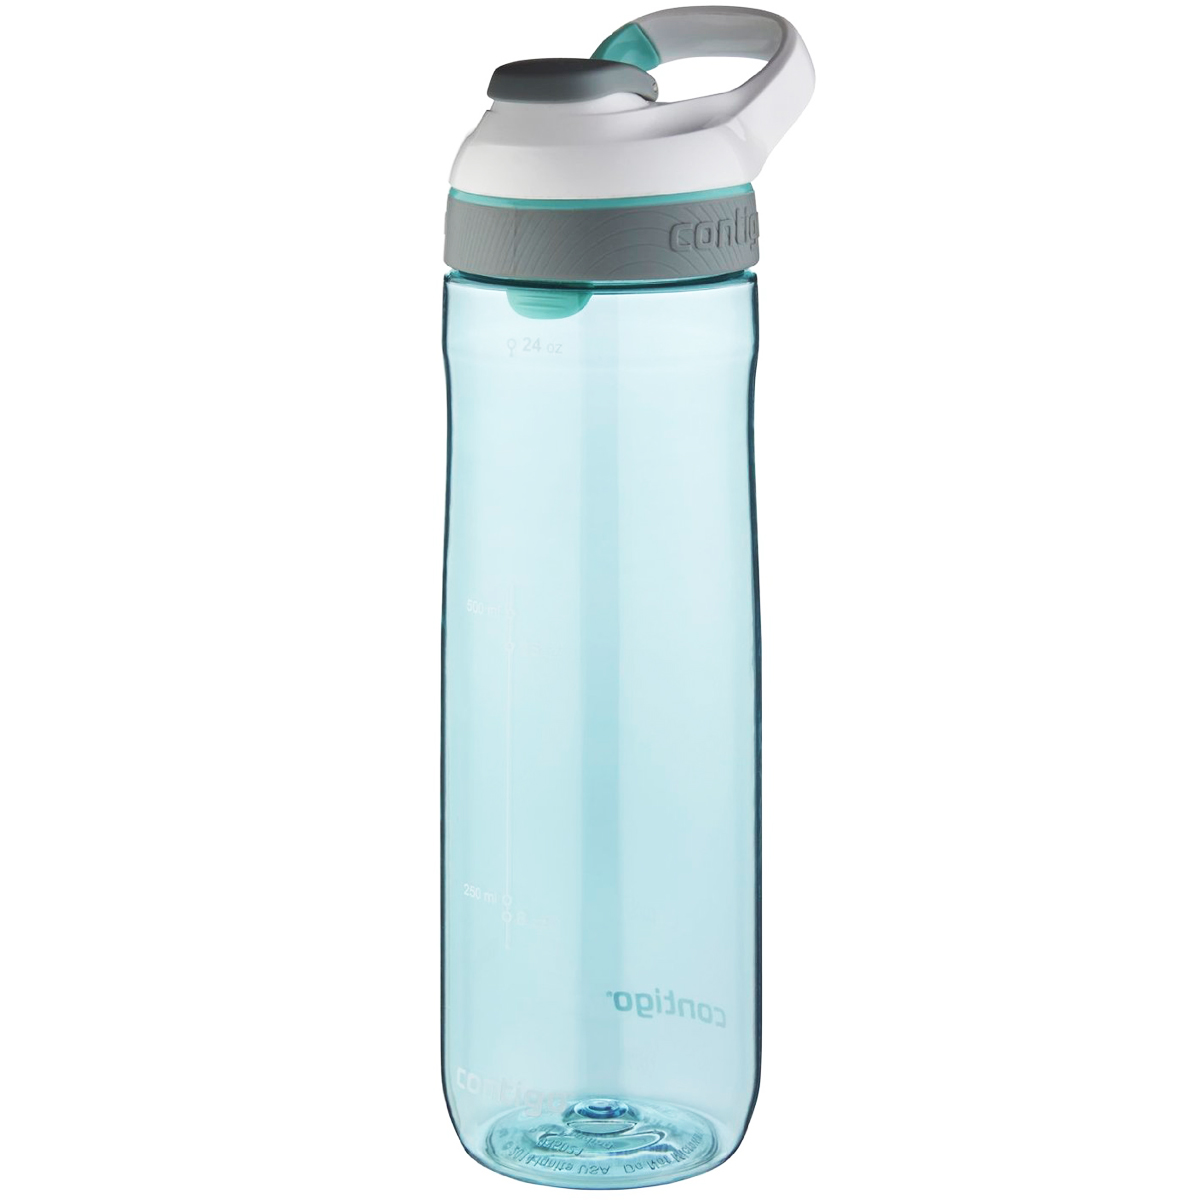 Contigo-24-oz-Cortland-Autoseal-Water-Bottle miniature 3